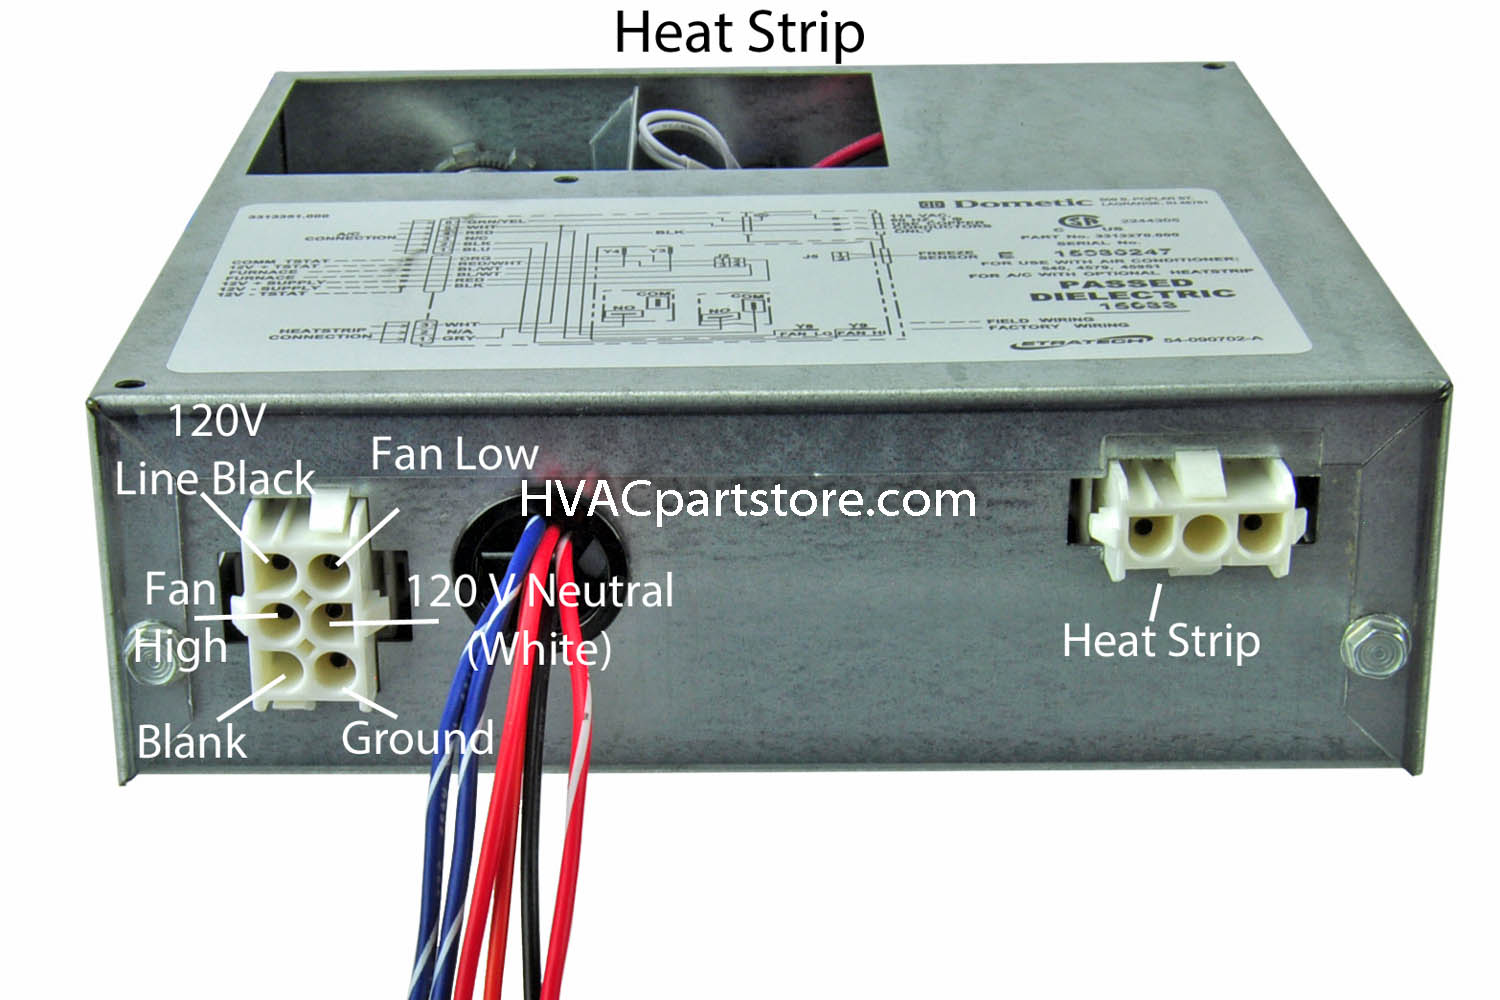 Modulator Motor M734d1038 Wiring Diagram Page 4 Honeywell Fan Center Relay Dometic Thermostat 3313189 000